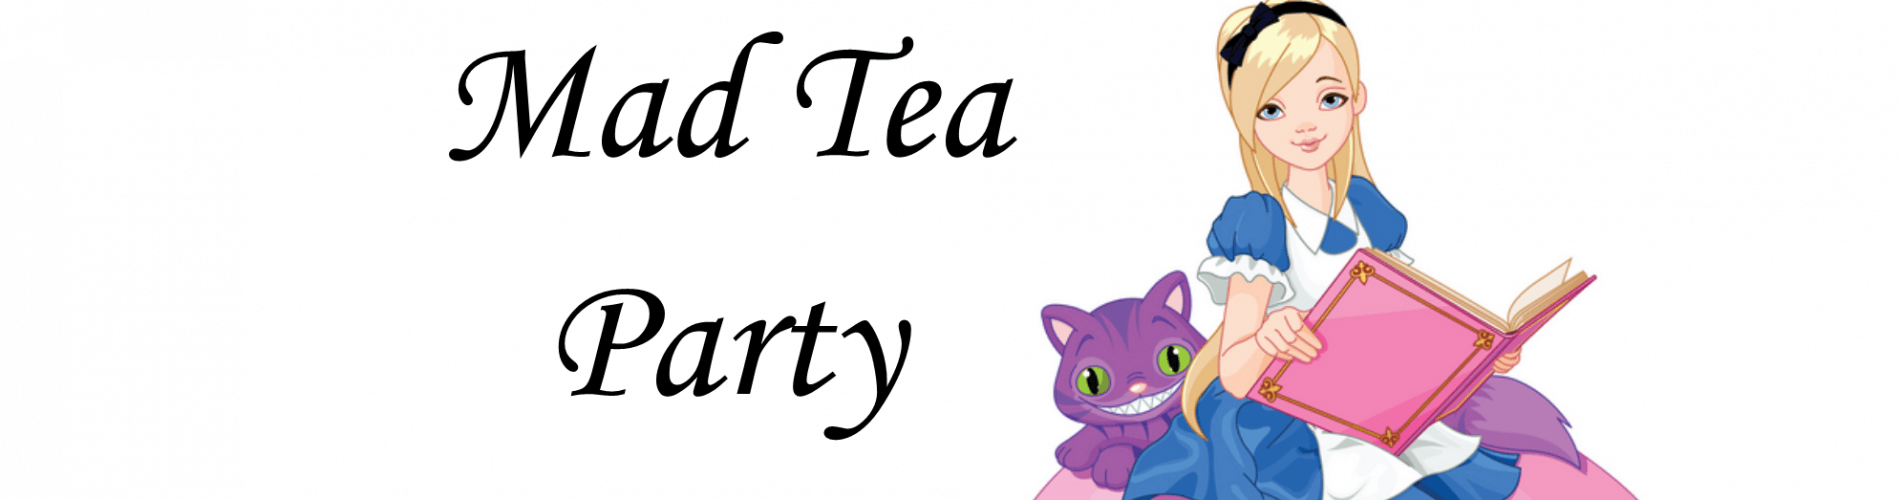 Mad Tea Party2